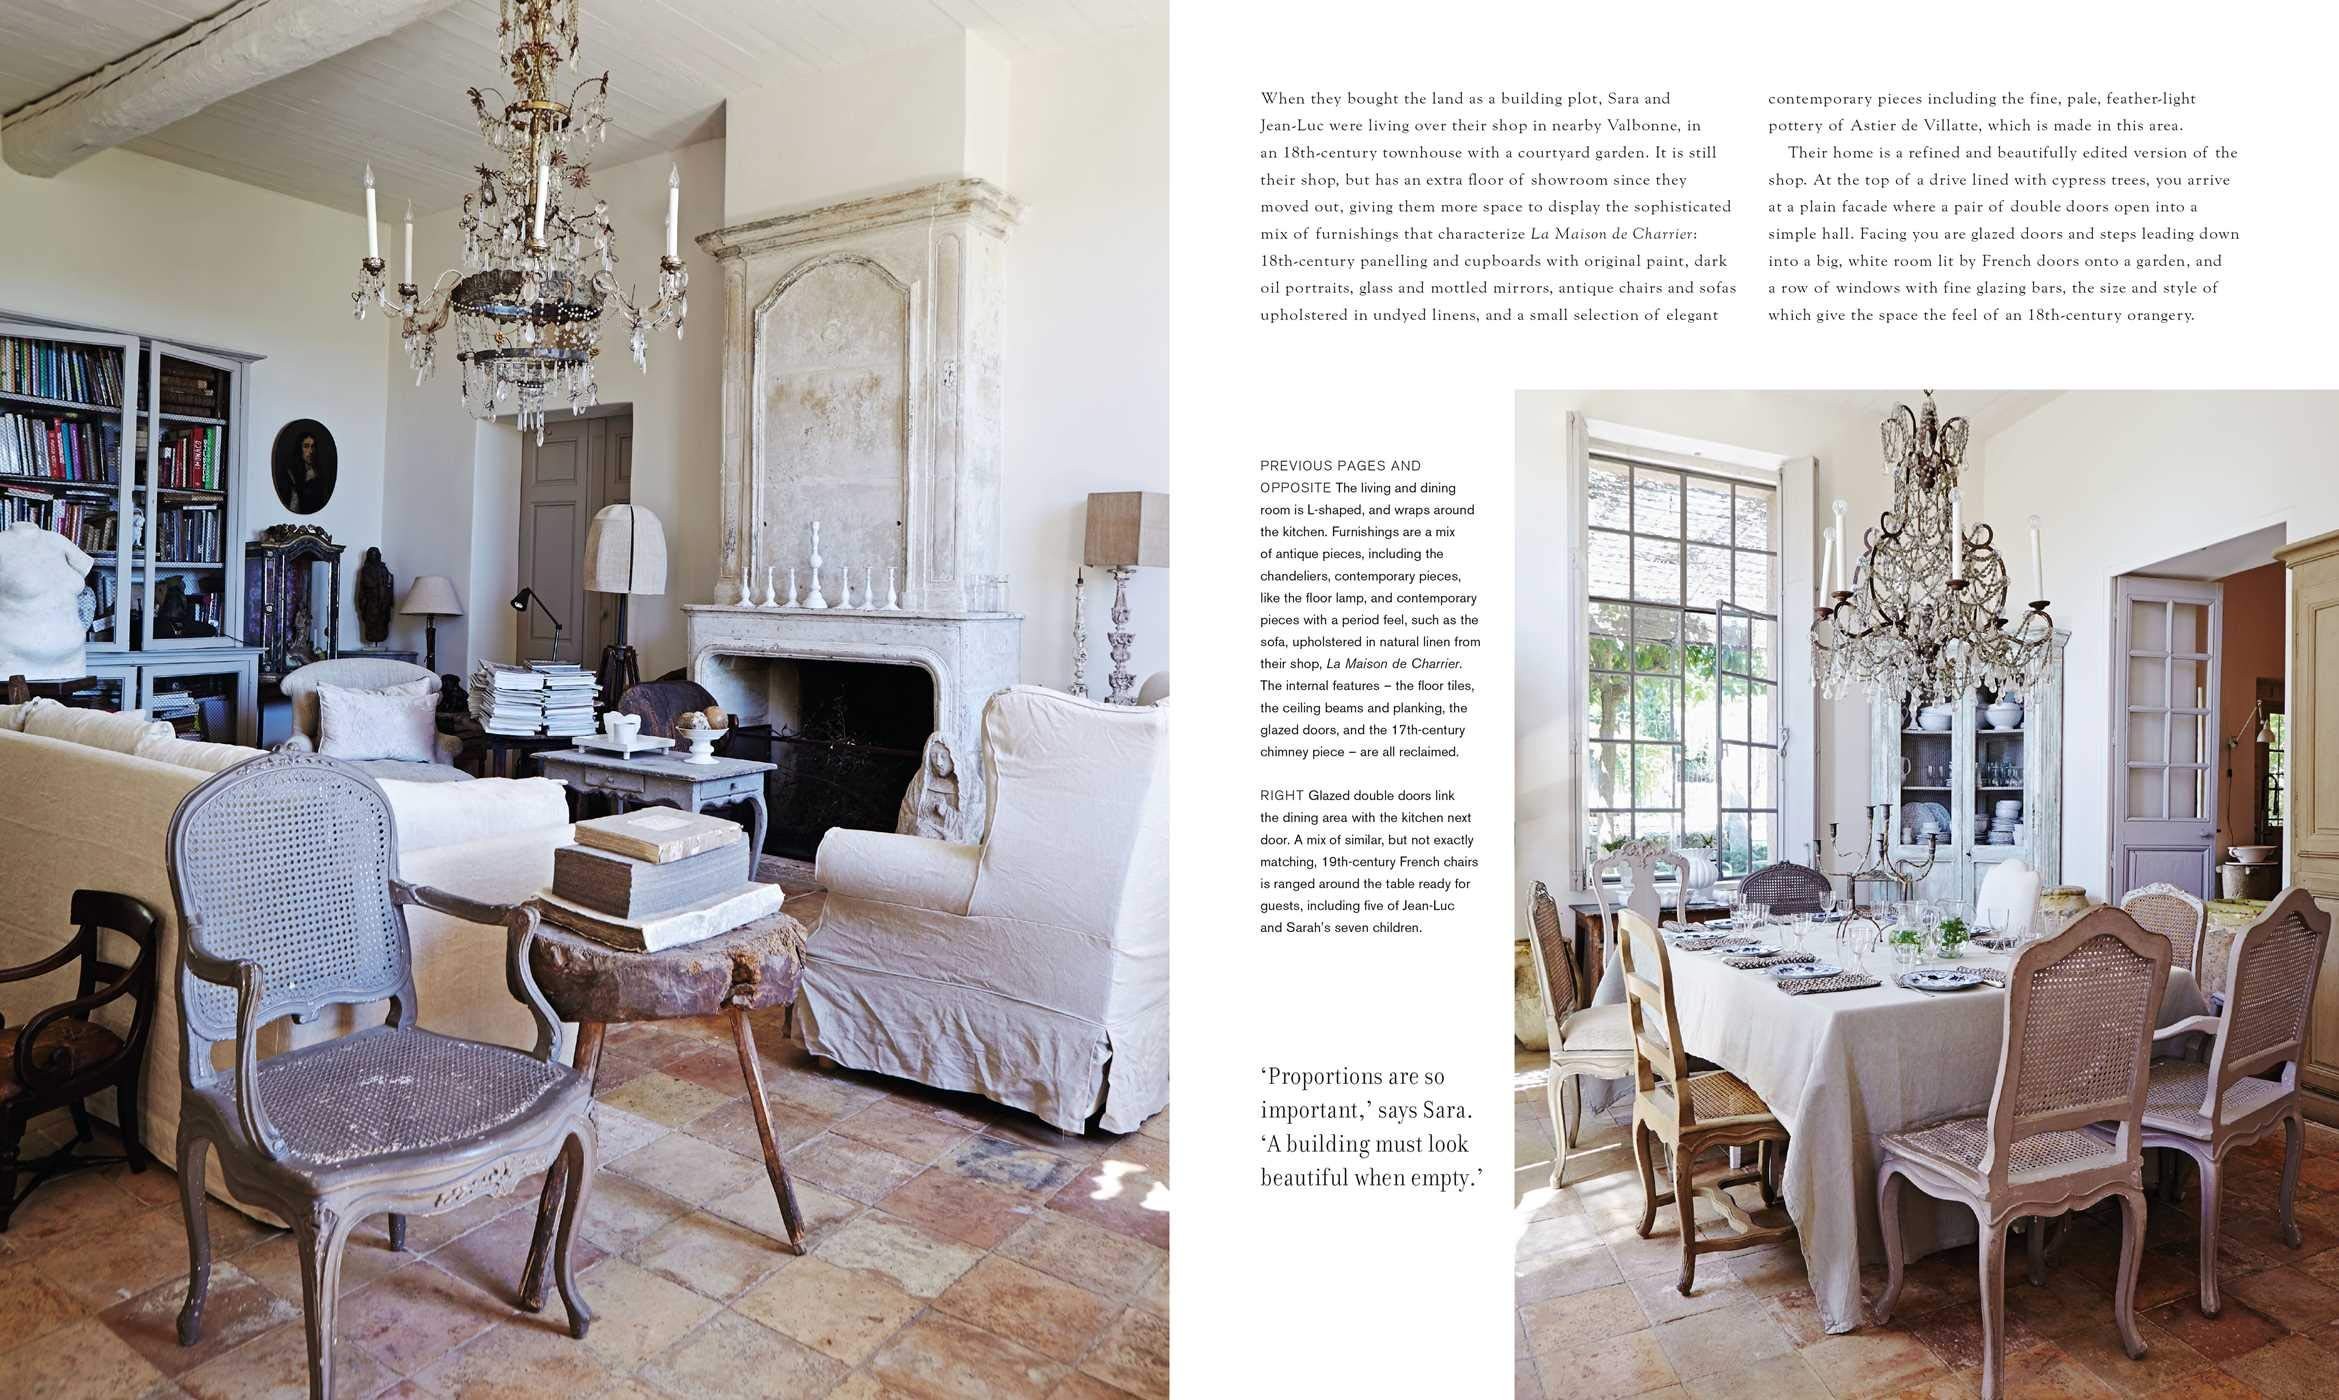 Perfect French Country book excerpt. #perfectfrenchcountry #frenchcountrystyle #interiordesign #designbooks